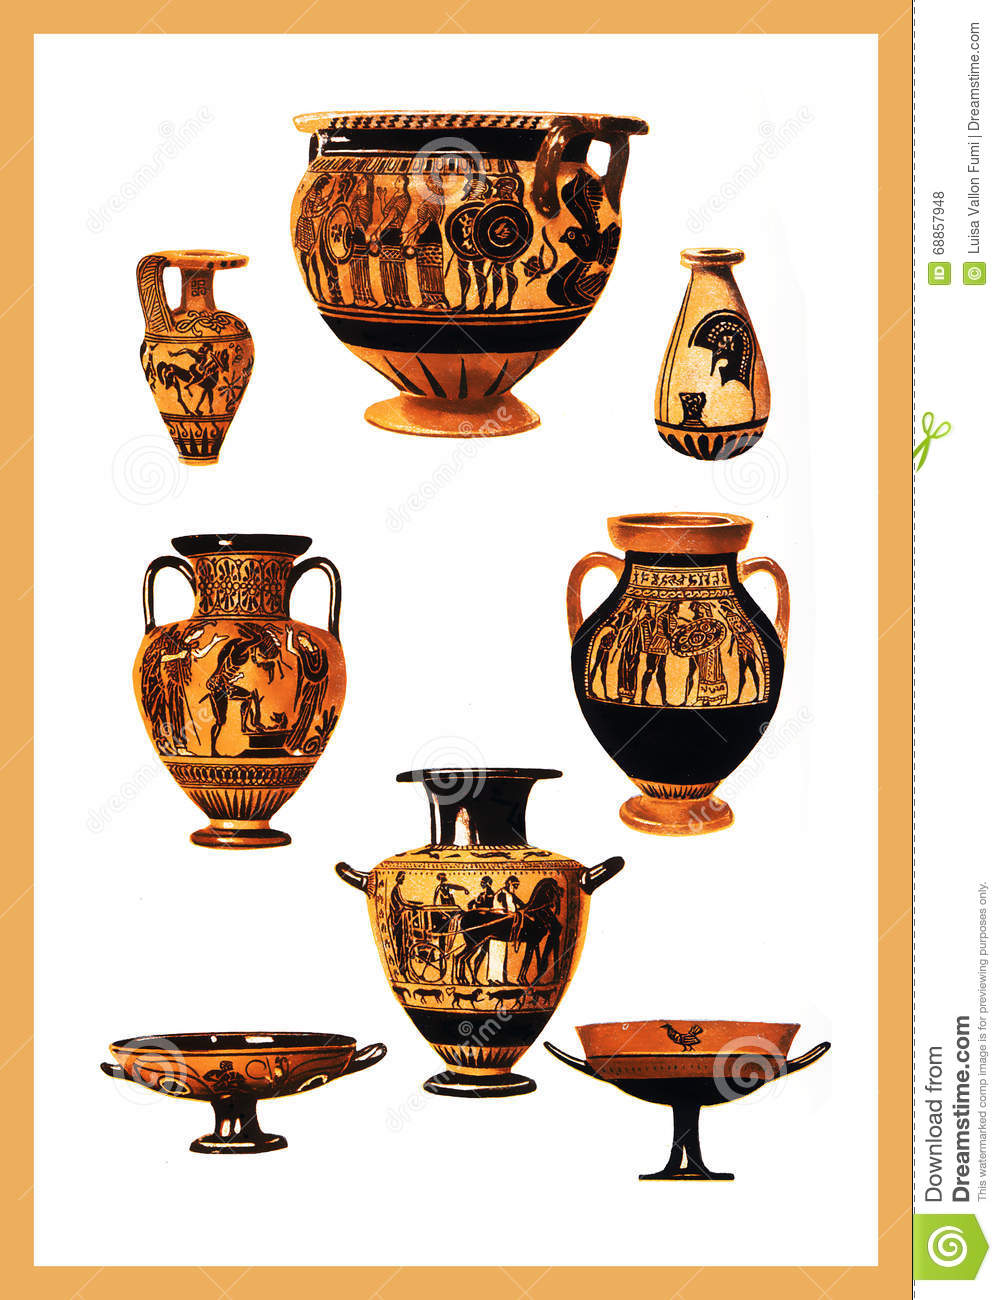 Ancient greek pottery with ocher and black decorations for Ancient greek pottery decoration